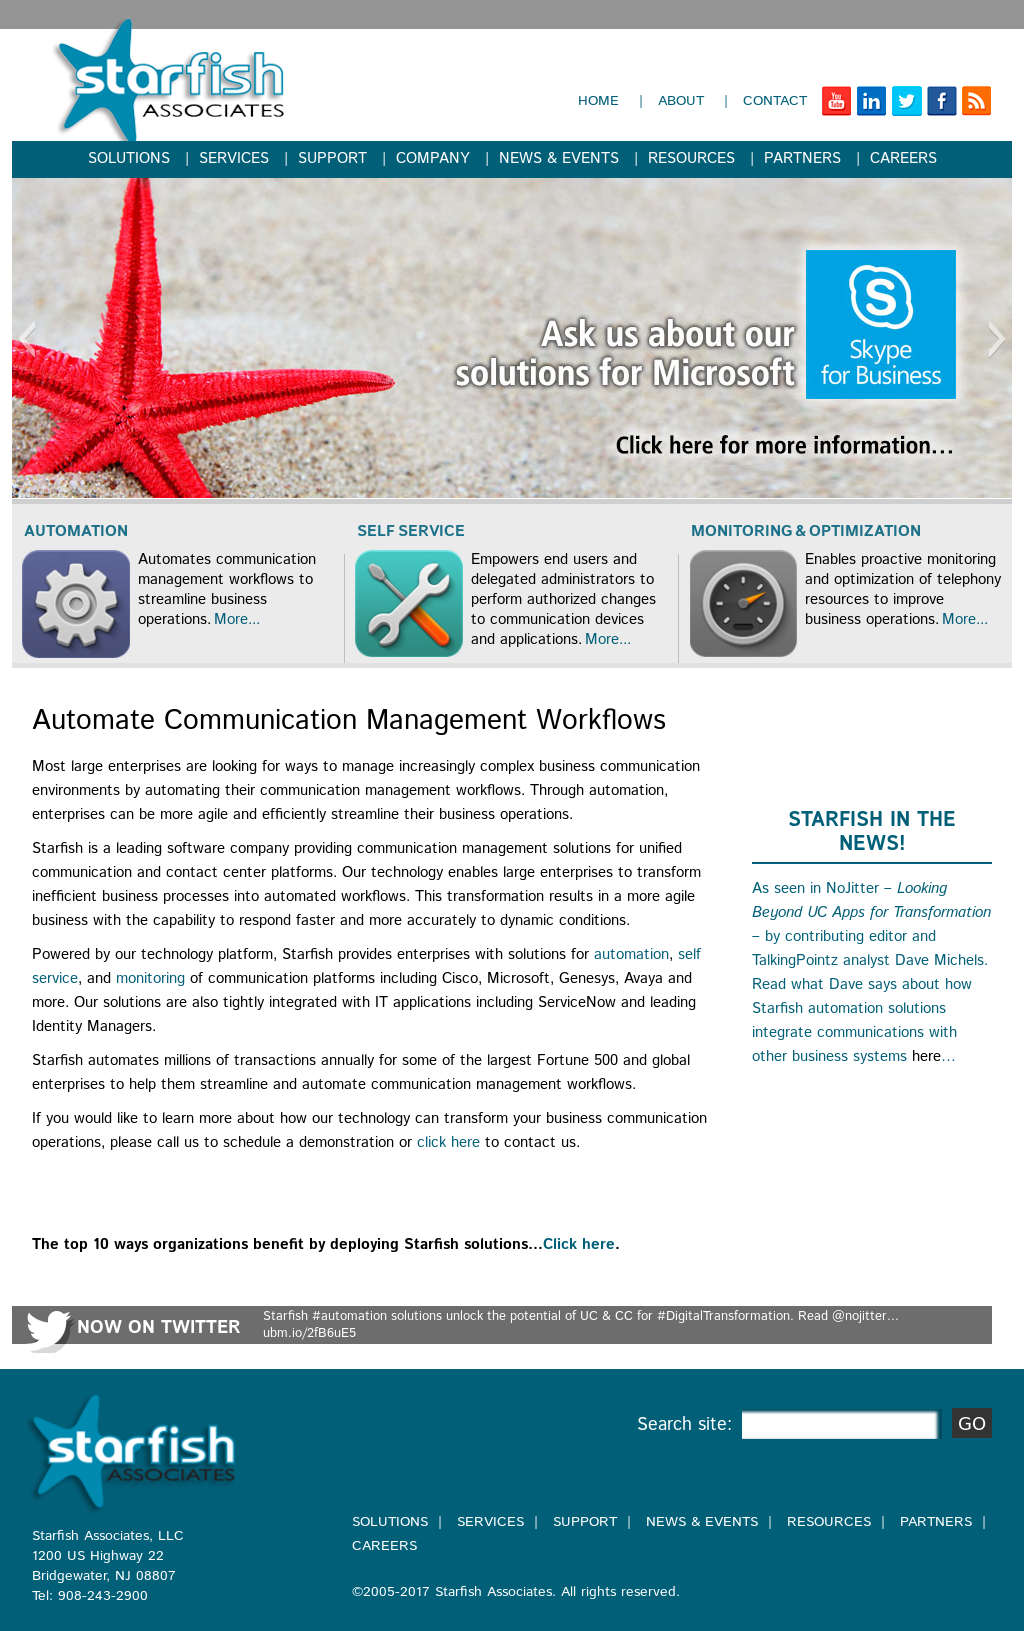 Starfish Associates Competitors, Revenue and Employees - Owler